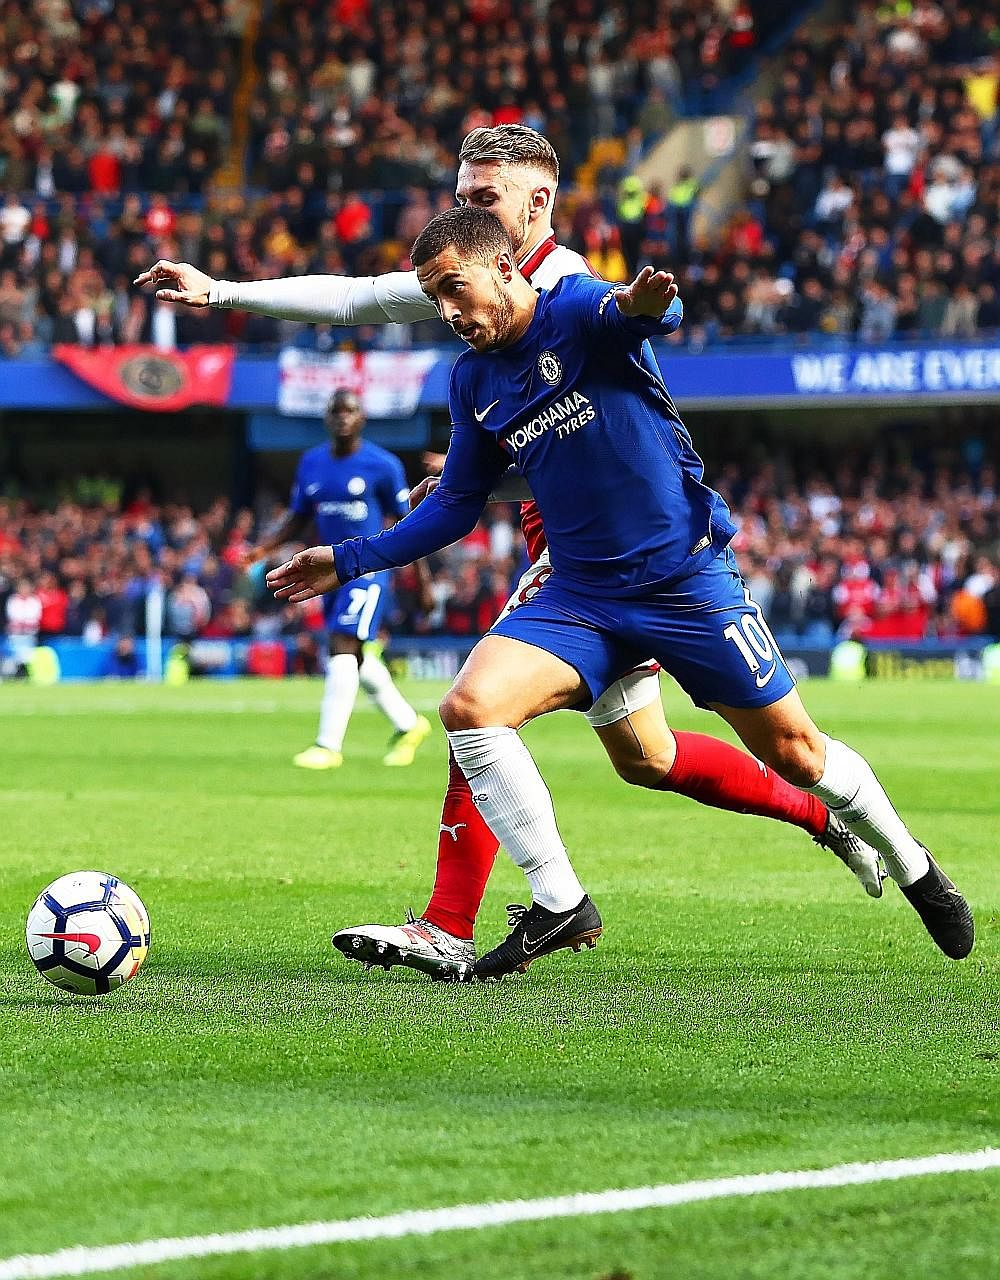 Chelsea forward Eden Hazard (front) fighting for the ball with Arsenal midfielder Aaron Ramsey during an English Premier League match at Stamford Bridge last week. Hazard was a second-half substitute and is still waiting for his first start for the B